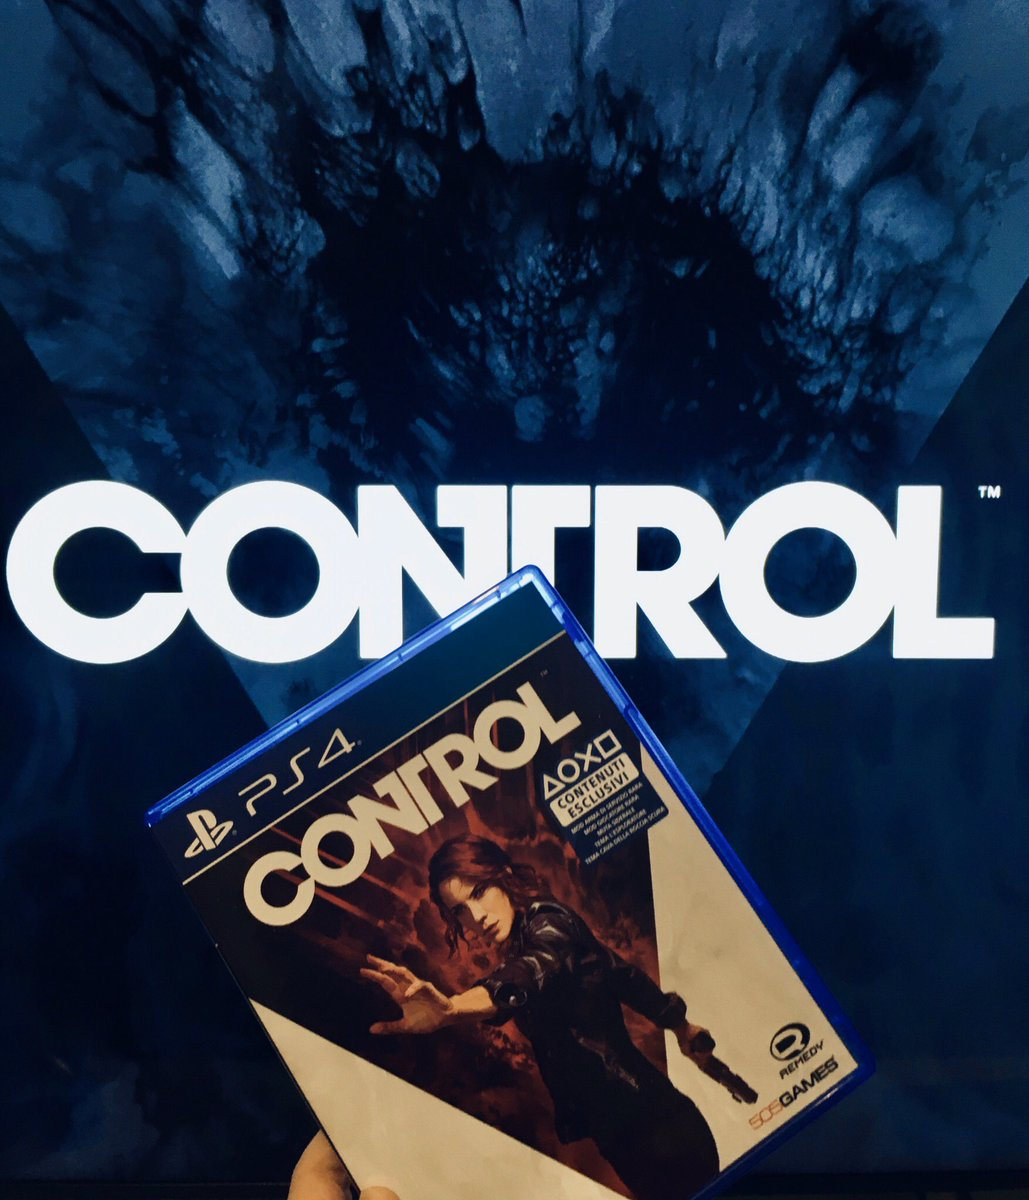 I've already played this game but I decided to buy my own copy because I love it too much! Can't wait for the DLCs 😍  #ControlRemedy #Control #505games #videogames